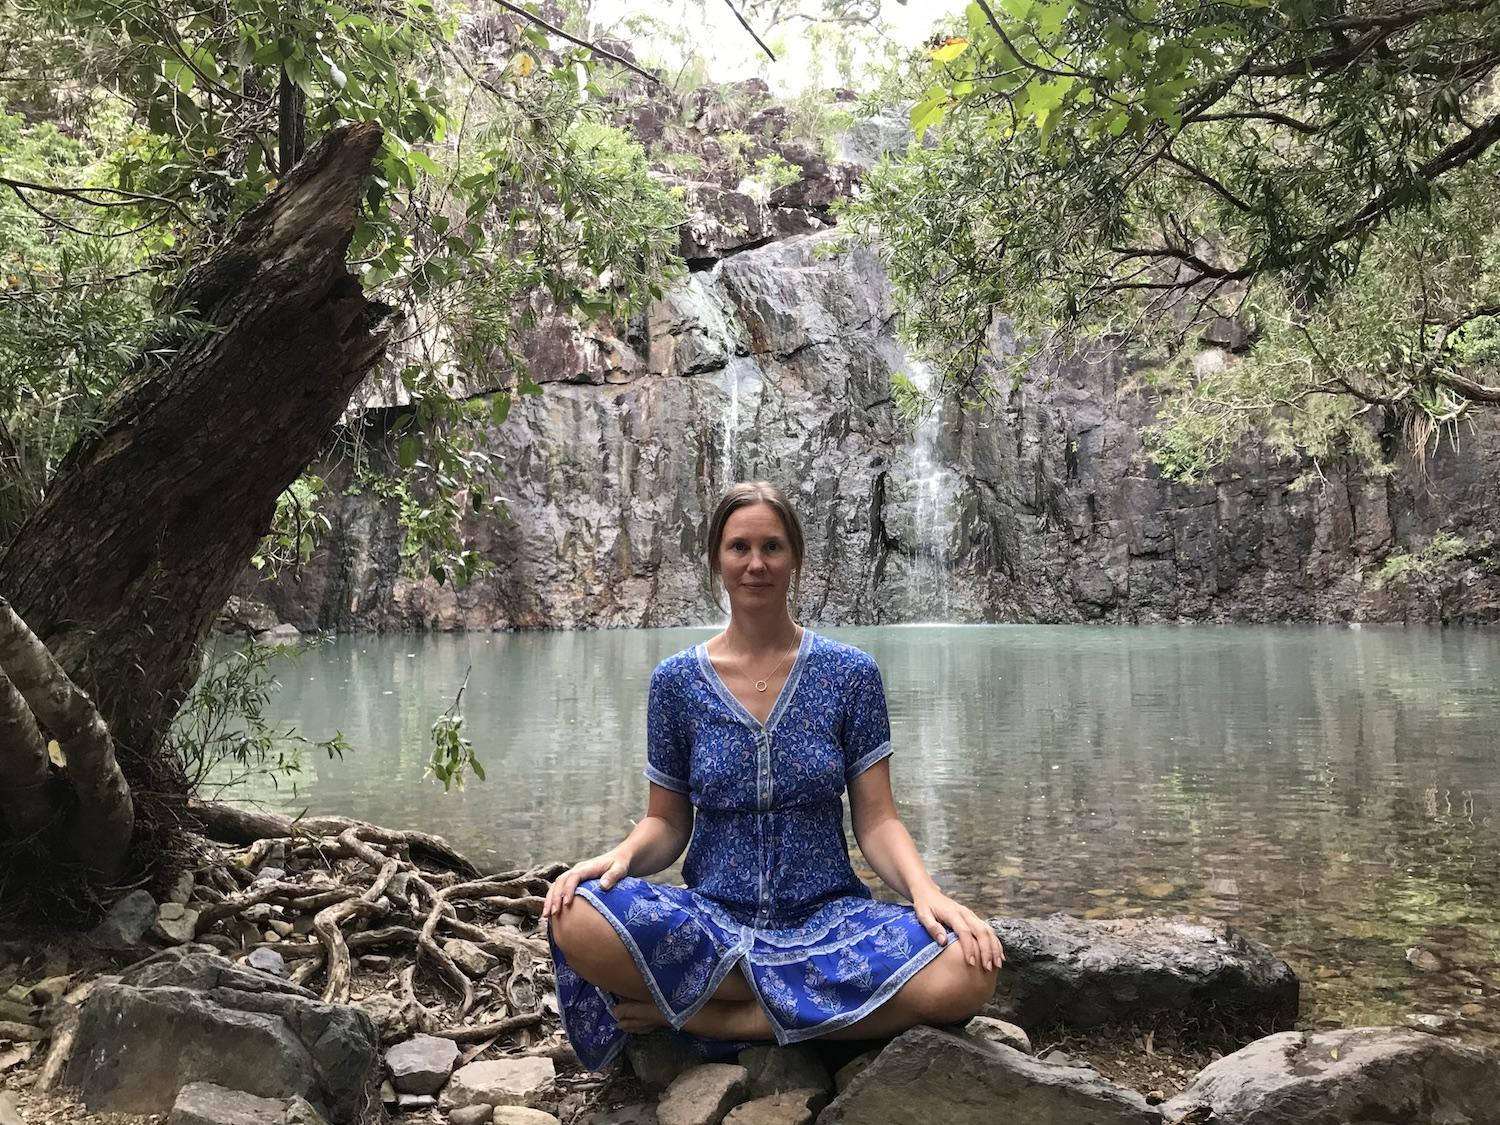 Hanne Koveshnikov at a wellness retreat